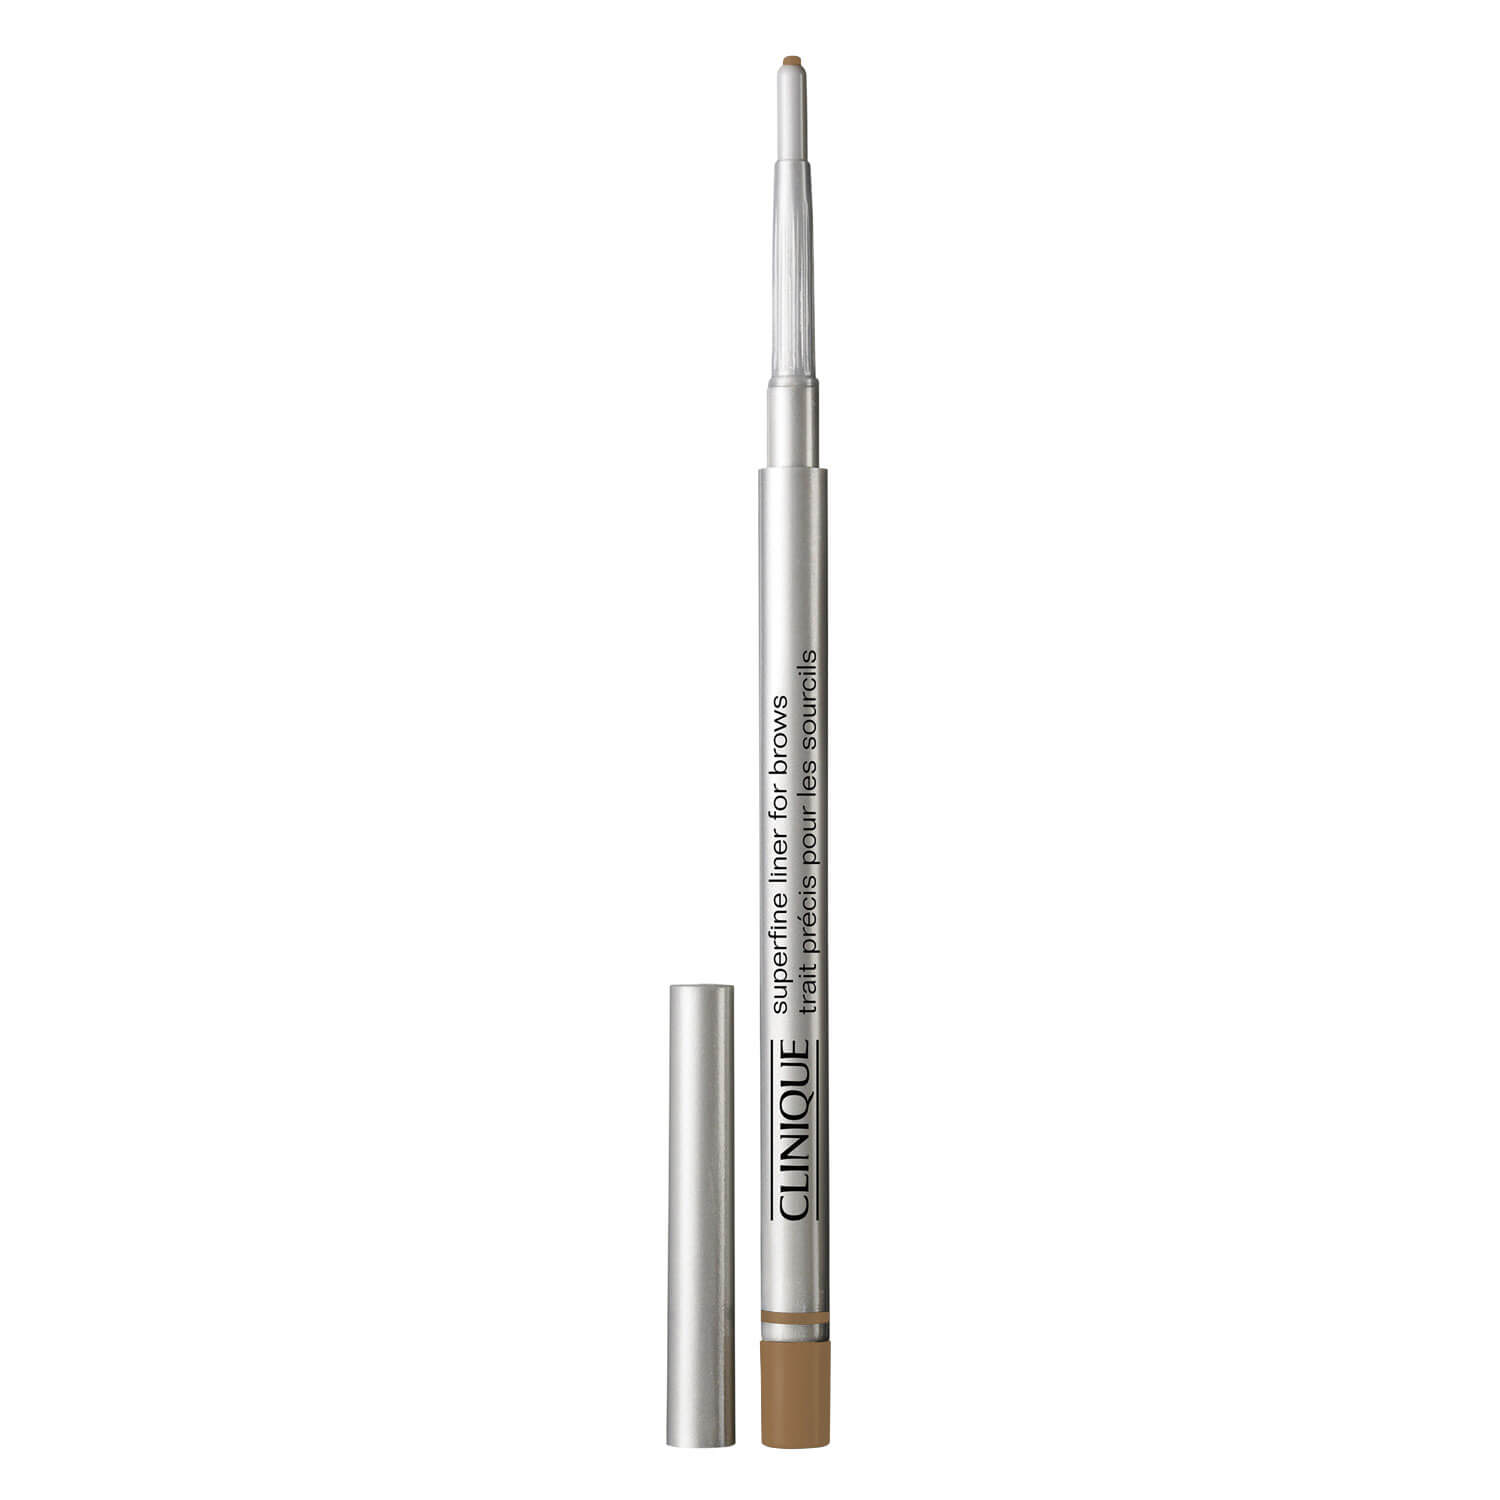 Superfine Liner For Brows - 01 Soft Blonde